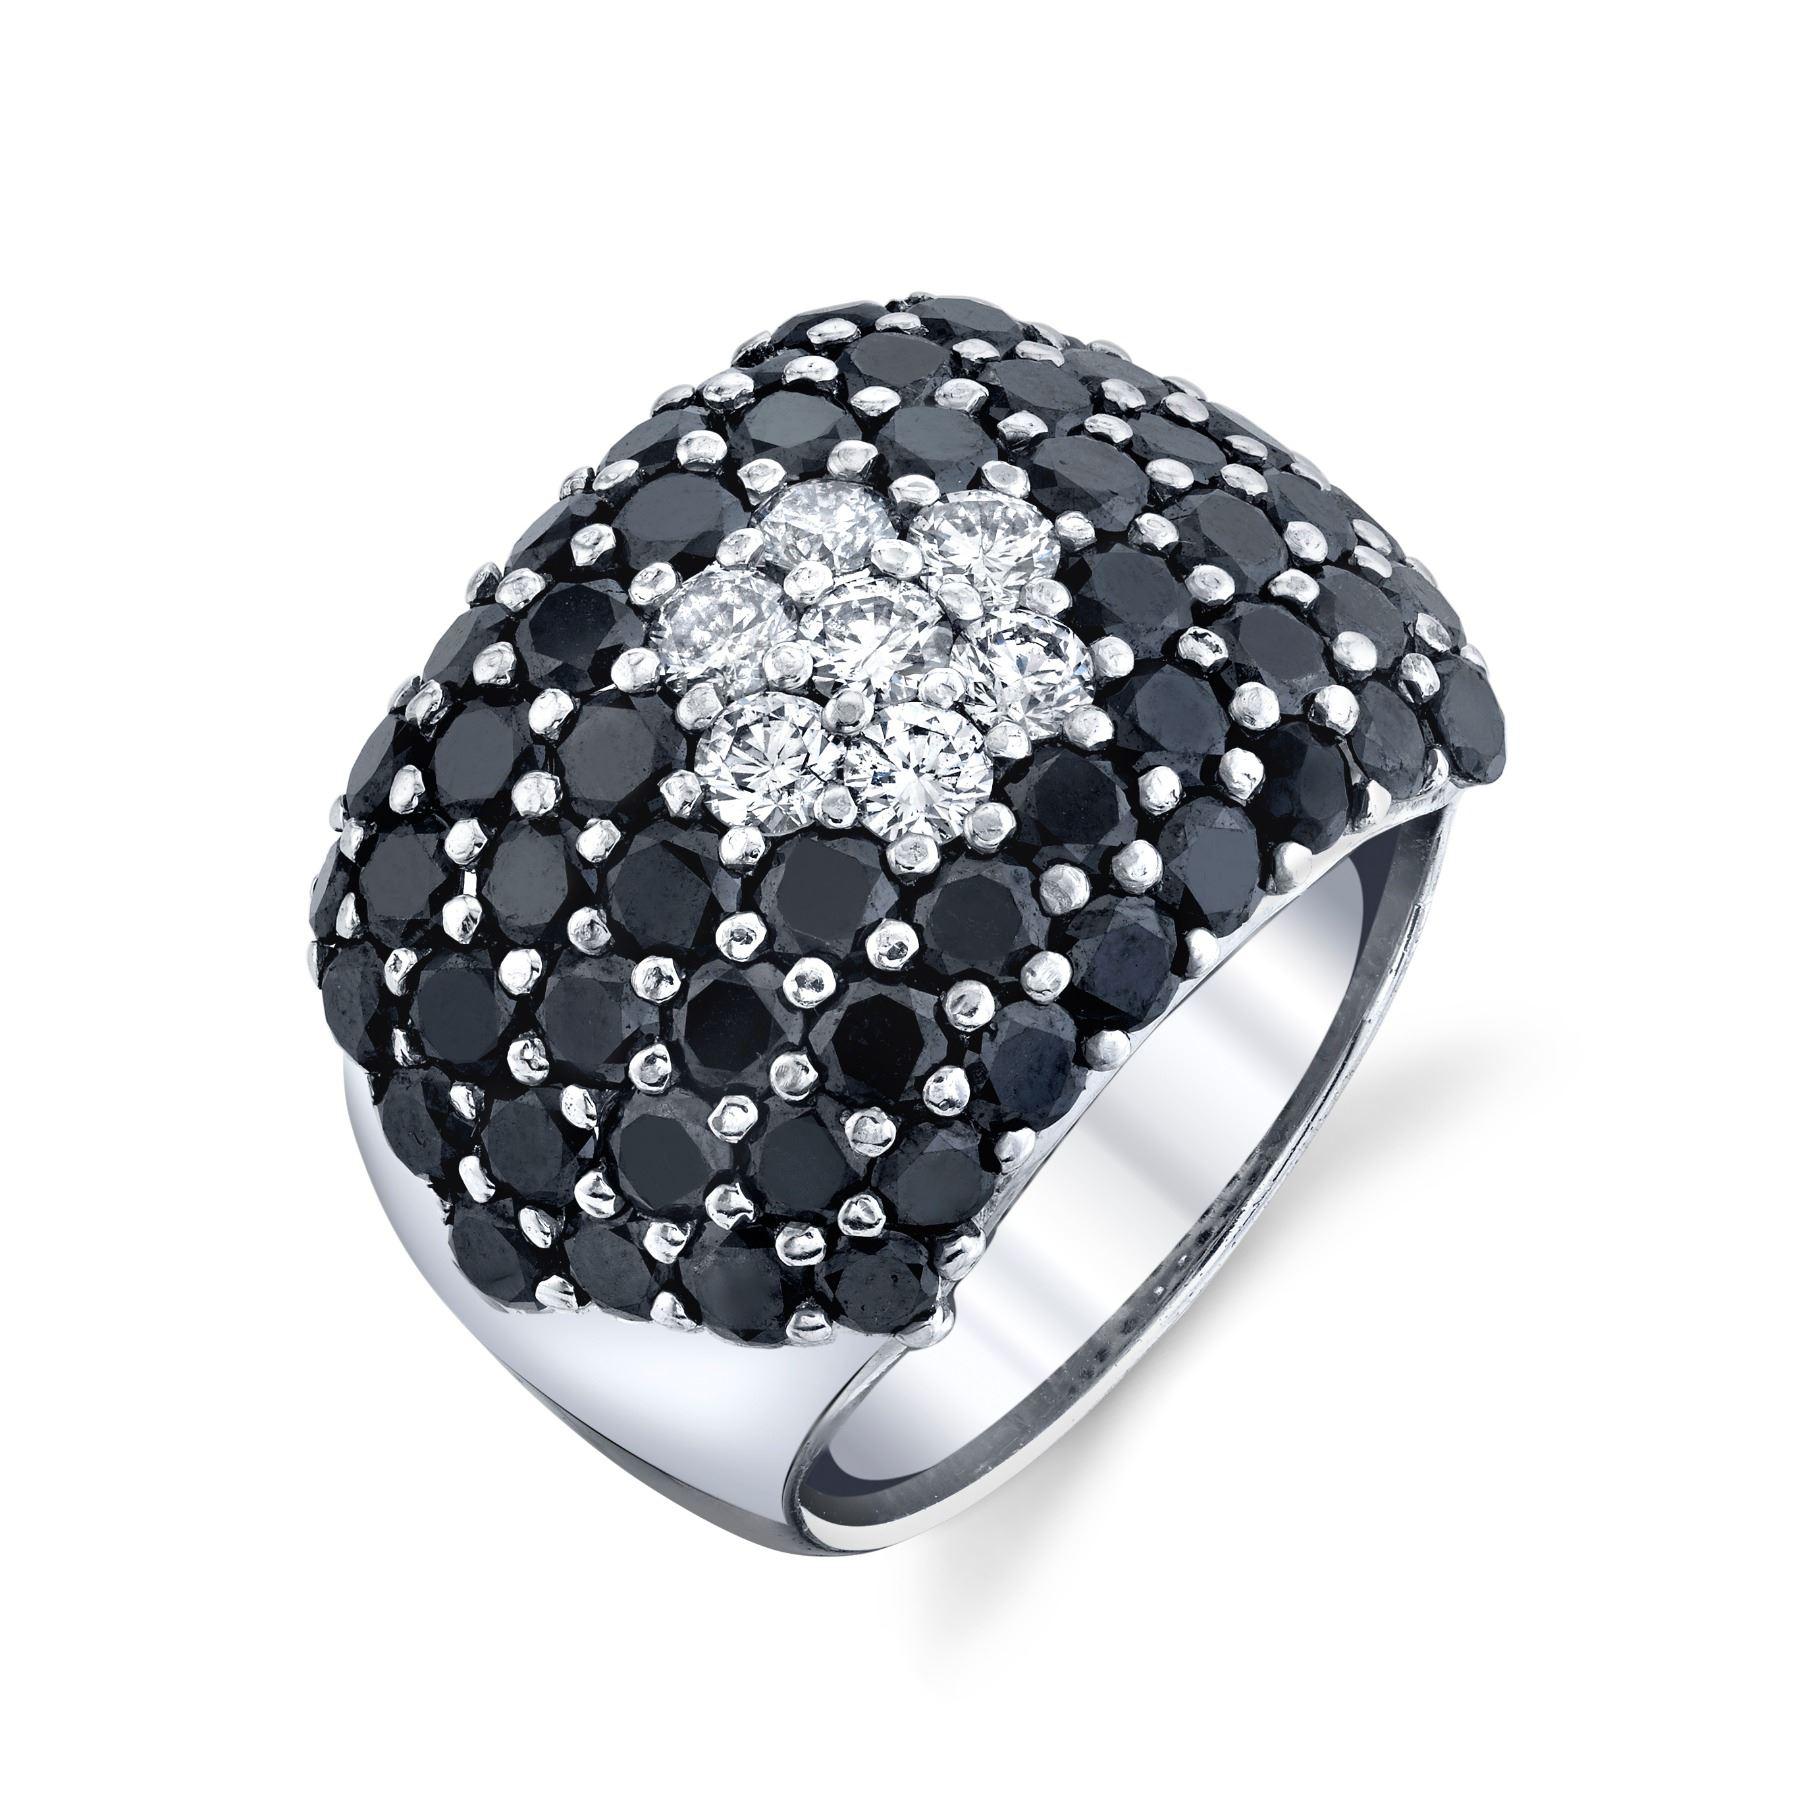 NATURAL BLACK AND WHITE DIAMOND RING AND EARRING SET BARANOF JEWELERS